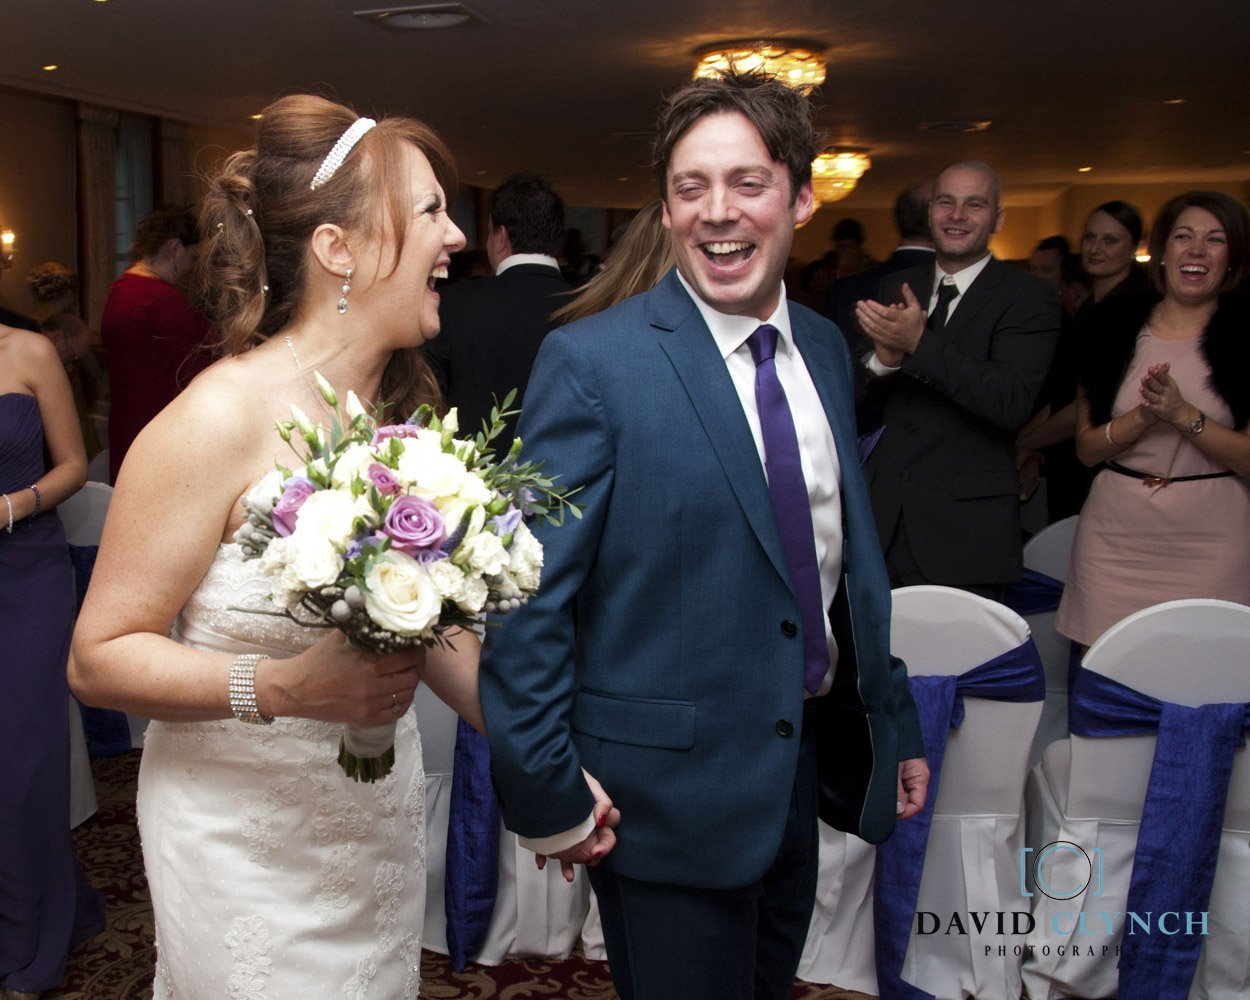 Fun Wedding Photographer Waterford Ireland